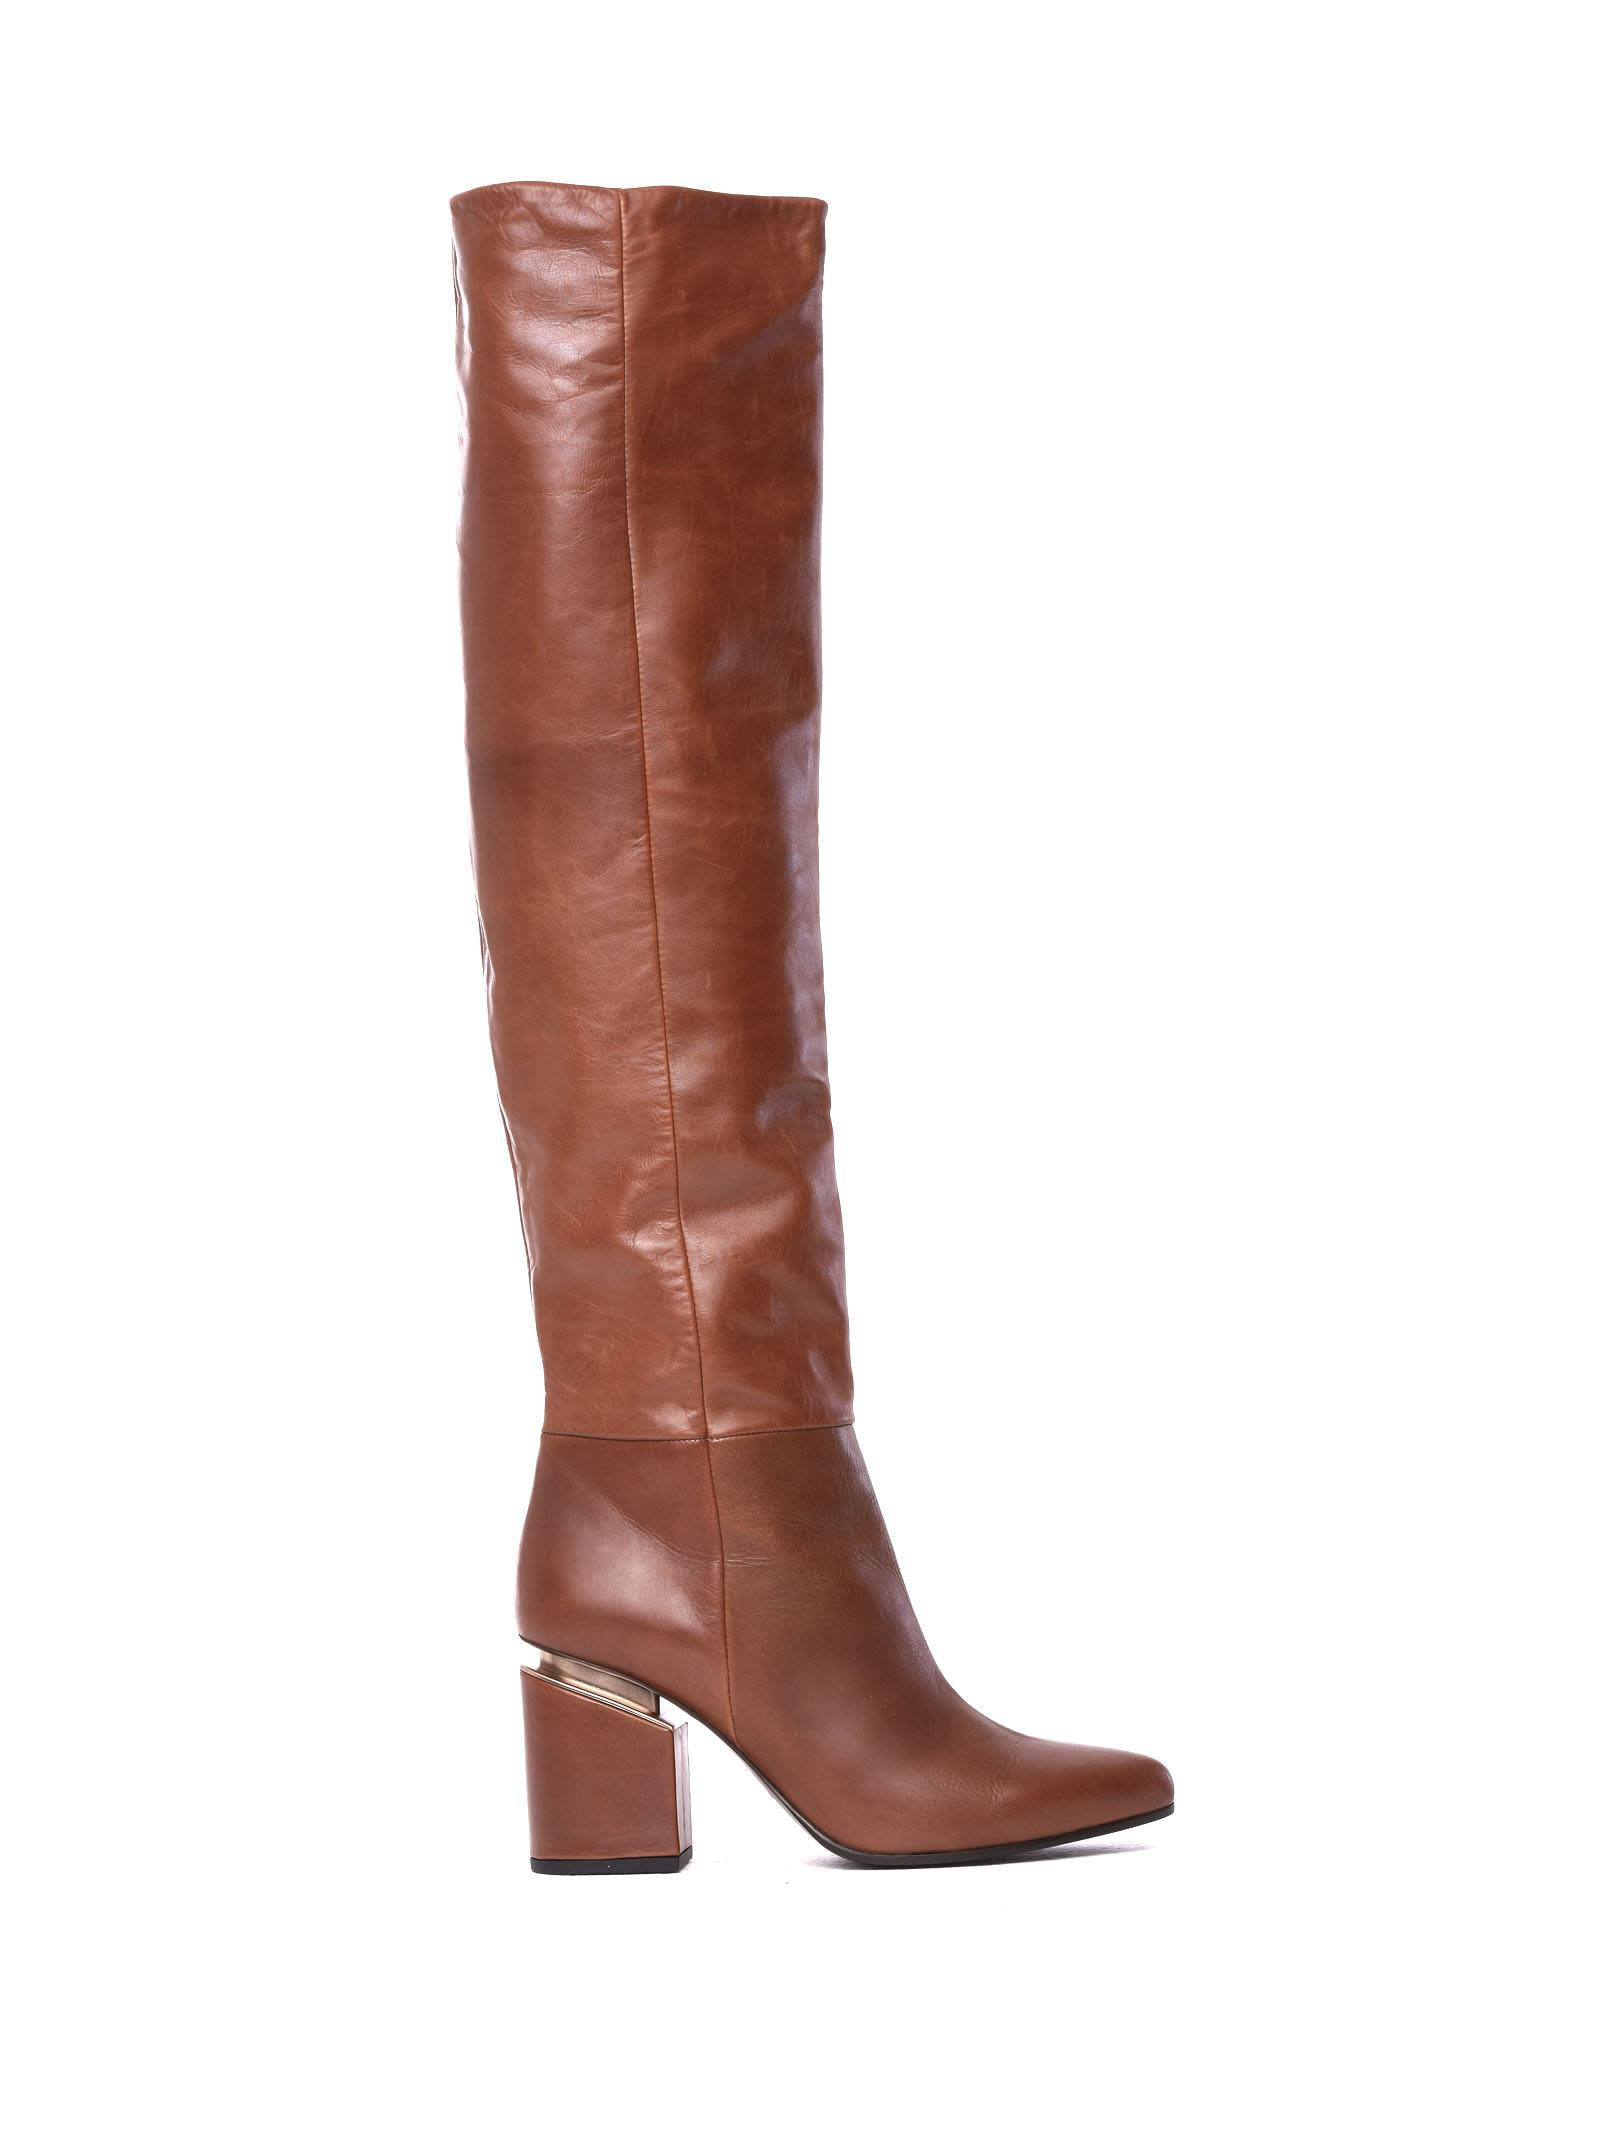 VIC MATIE Brown Leather Stove Pipe Boots With Suspended Heel in Tobacco